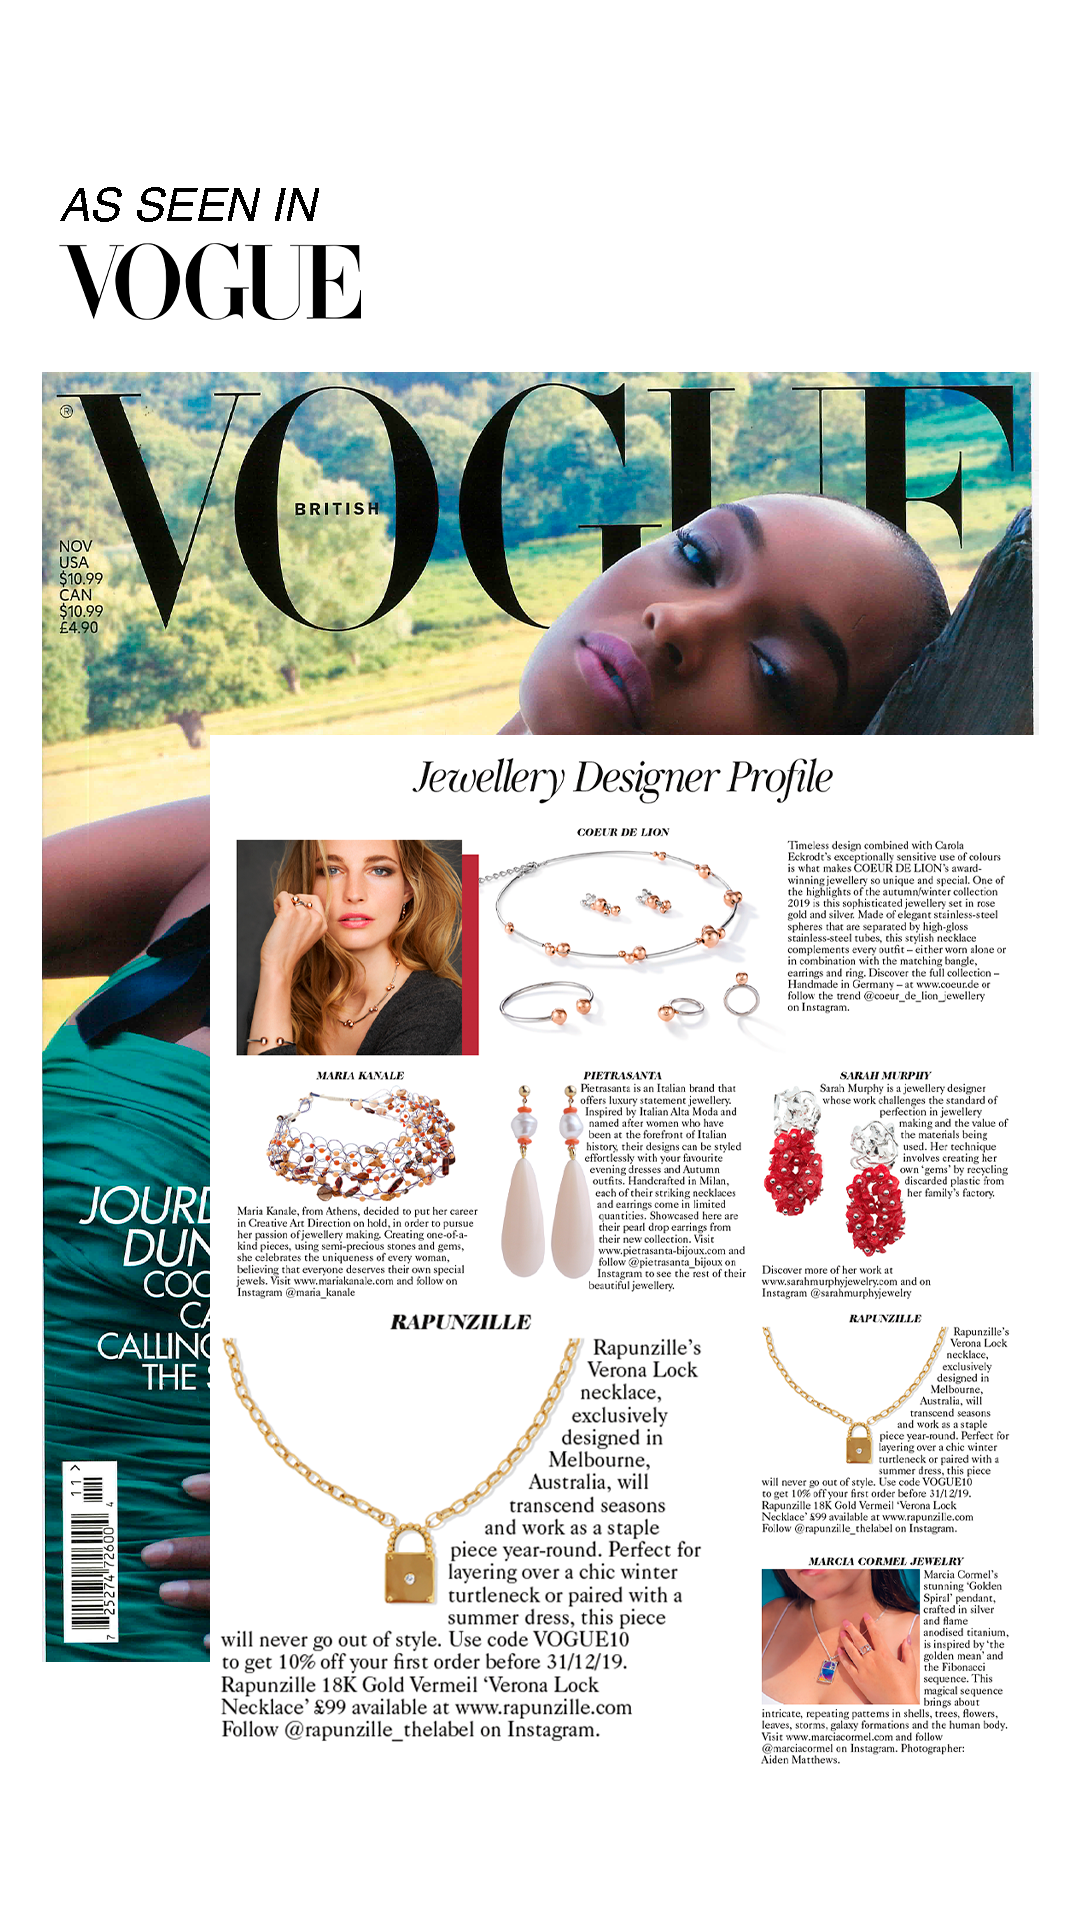 British Vogue - Novemeber 2019 - Rapunzille - Verona Lock Necklace